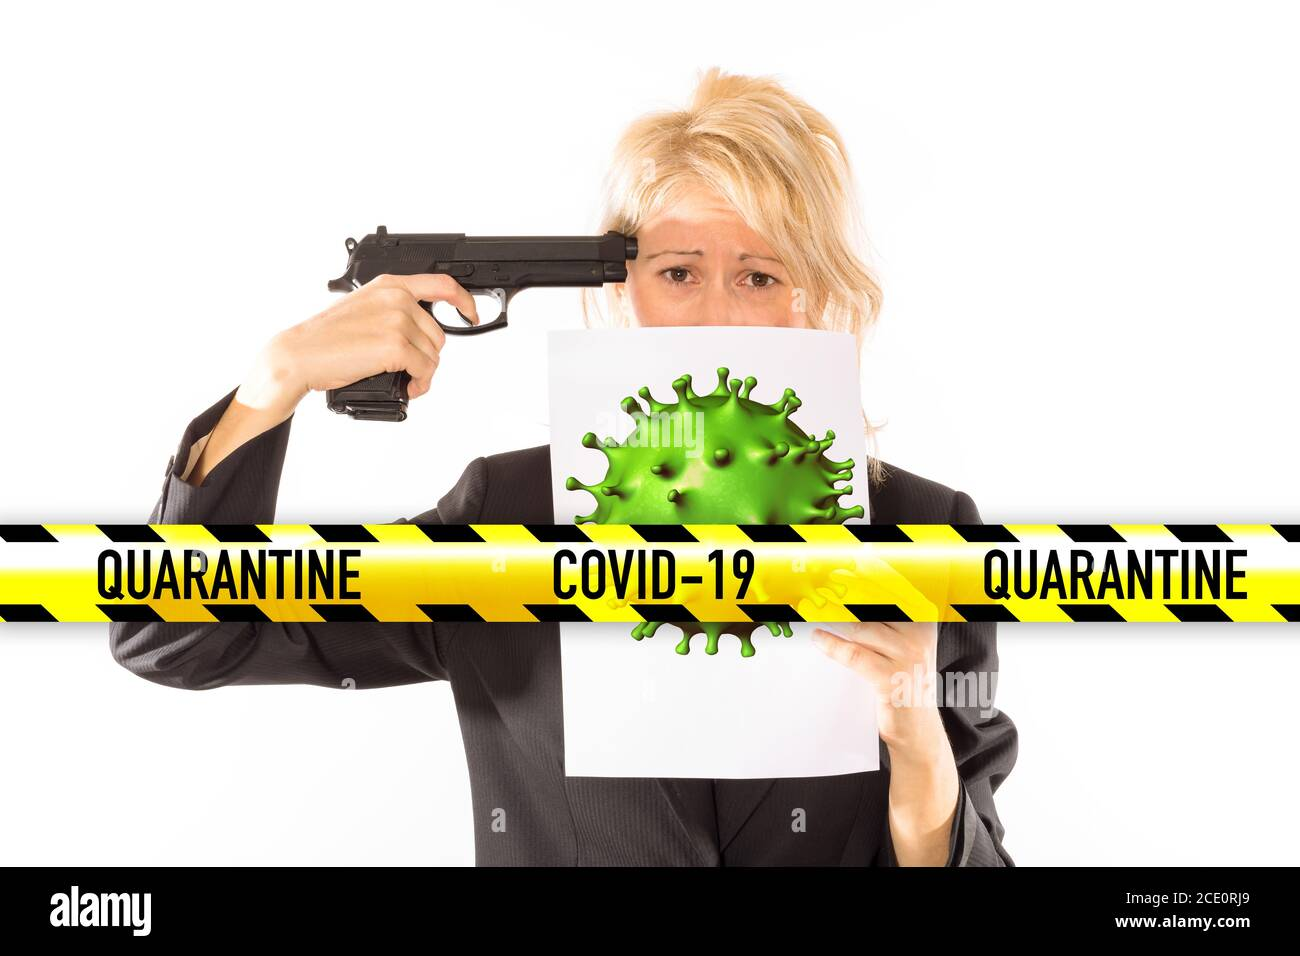 Depressed businesswoman with a gun aimed at her head for the Covid-19 quarantine. Concept of losing the job, company bankruptcy, coronavirus stress Stock Photo